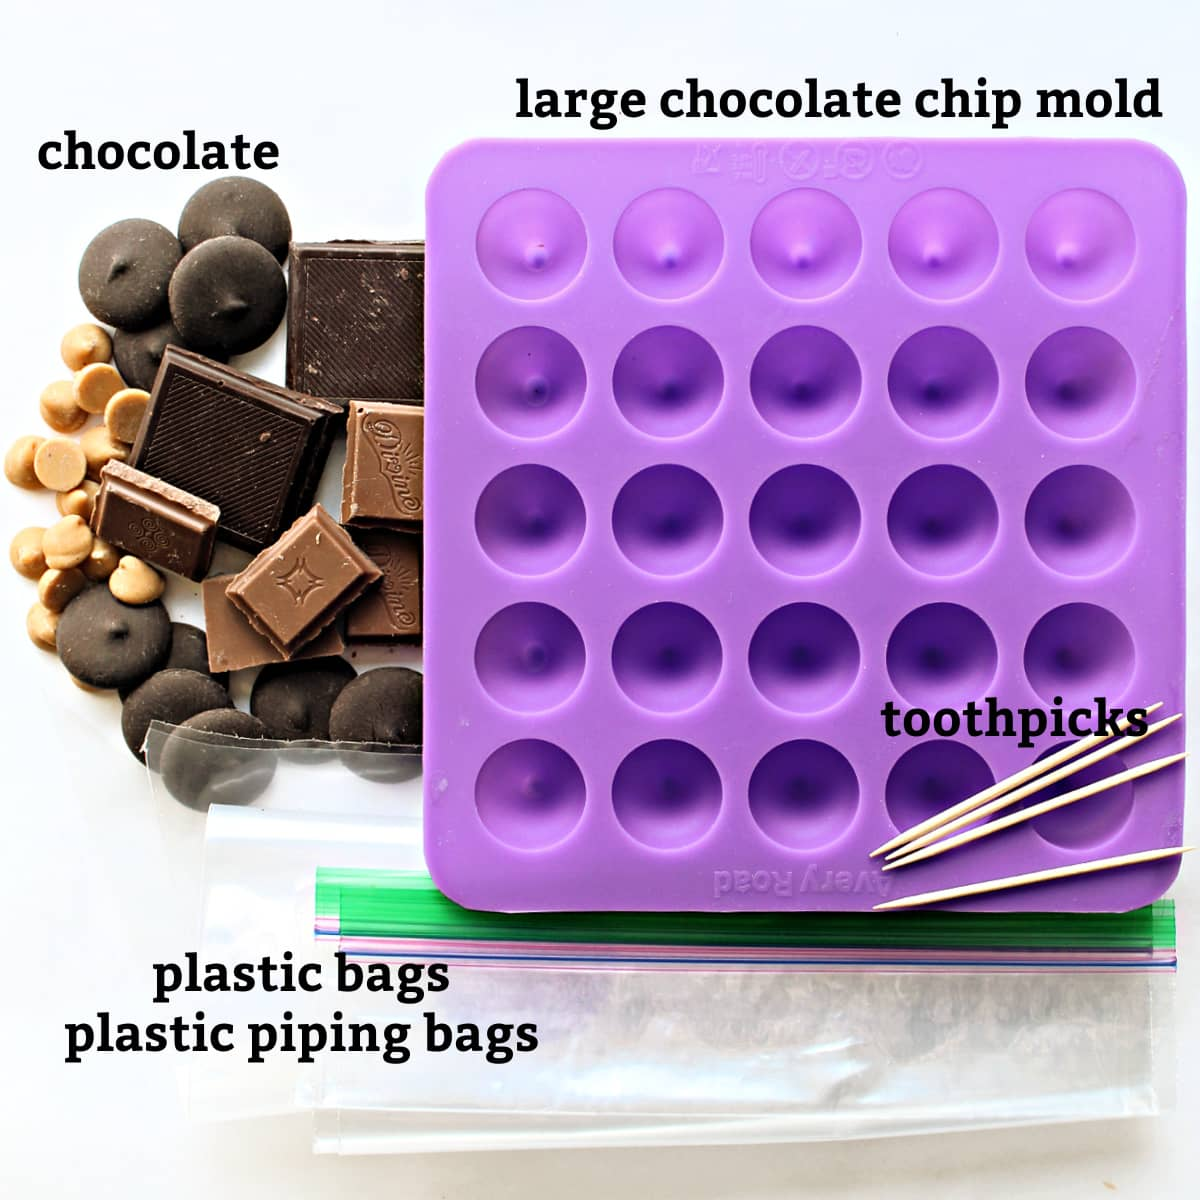 Materials needed are candy mold, chocolate, toothpicks, plastic bags or piping bags.